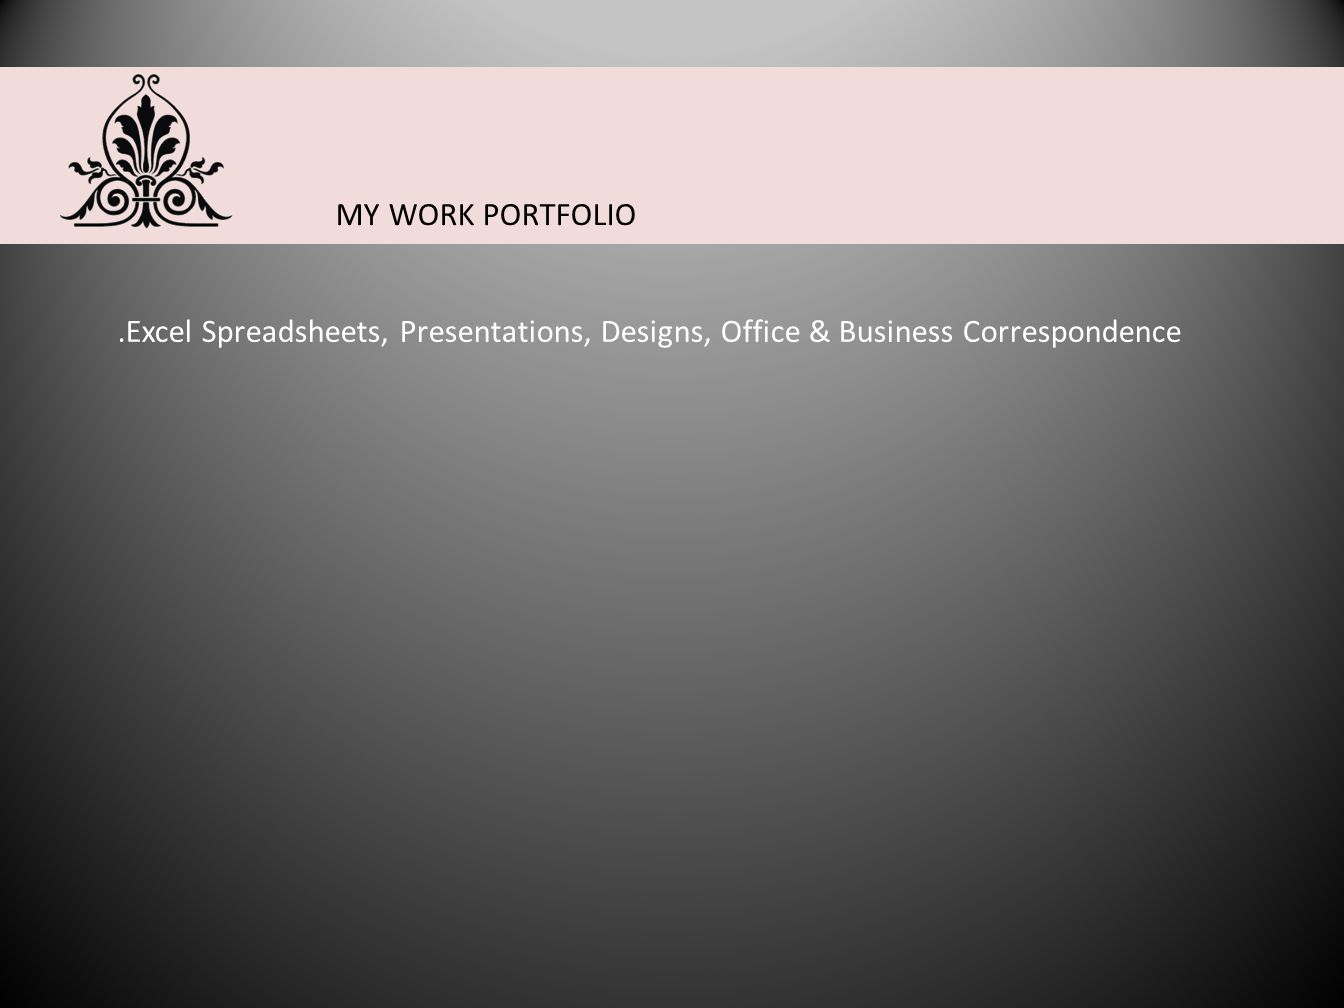 MY WORK PORTFOLIO.Excel Spreadsheets, Presentations, Designs, Office & Business Correspondence